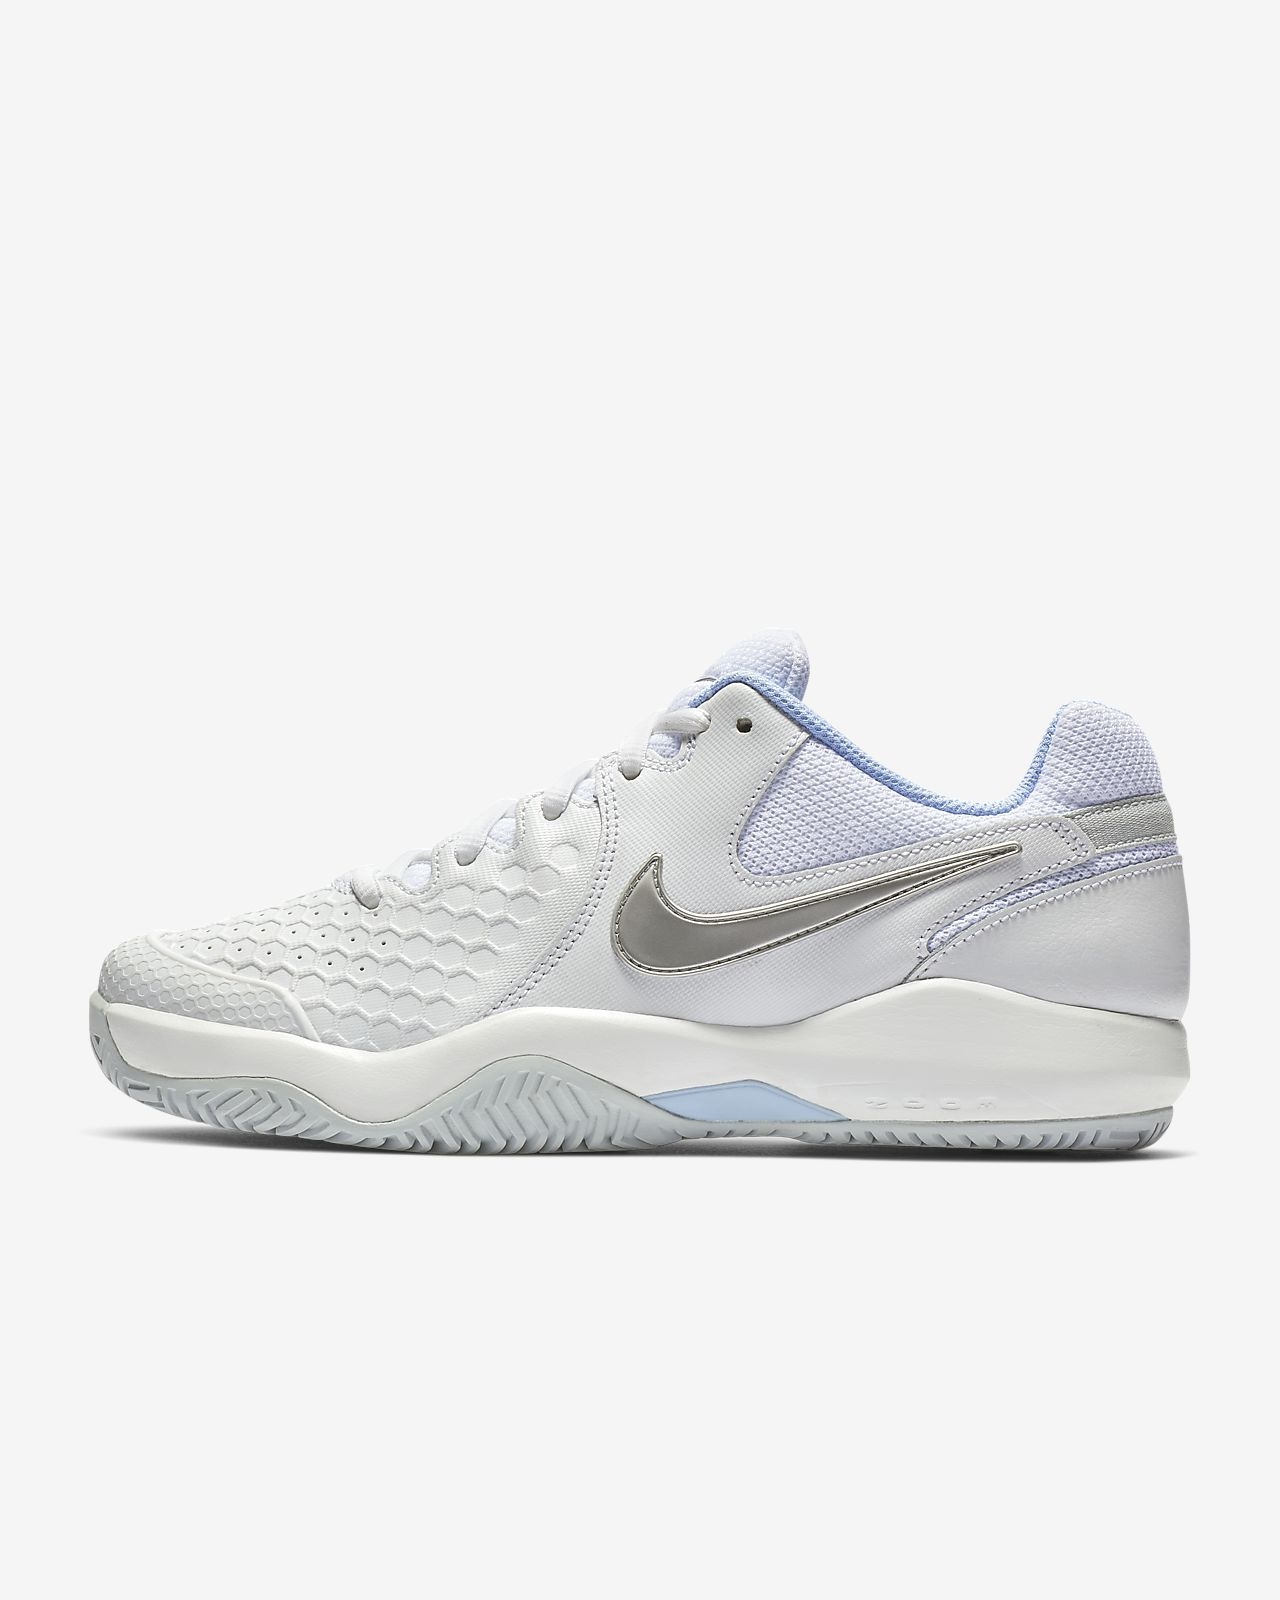 180ac273c1c0d NikeCourt Air Zoom Resistance Women s Hard Court Tennis Shoe. Nike.com